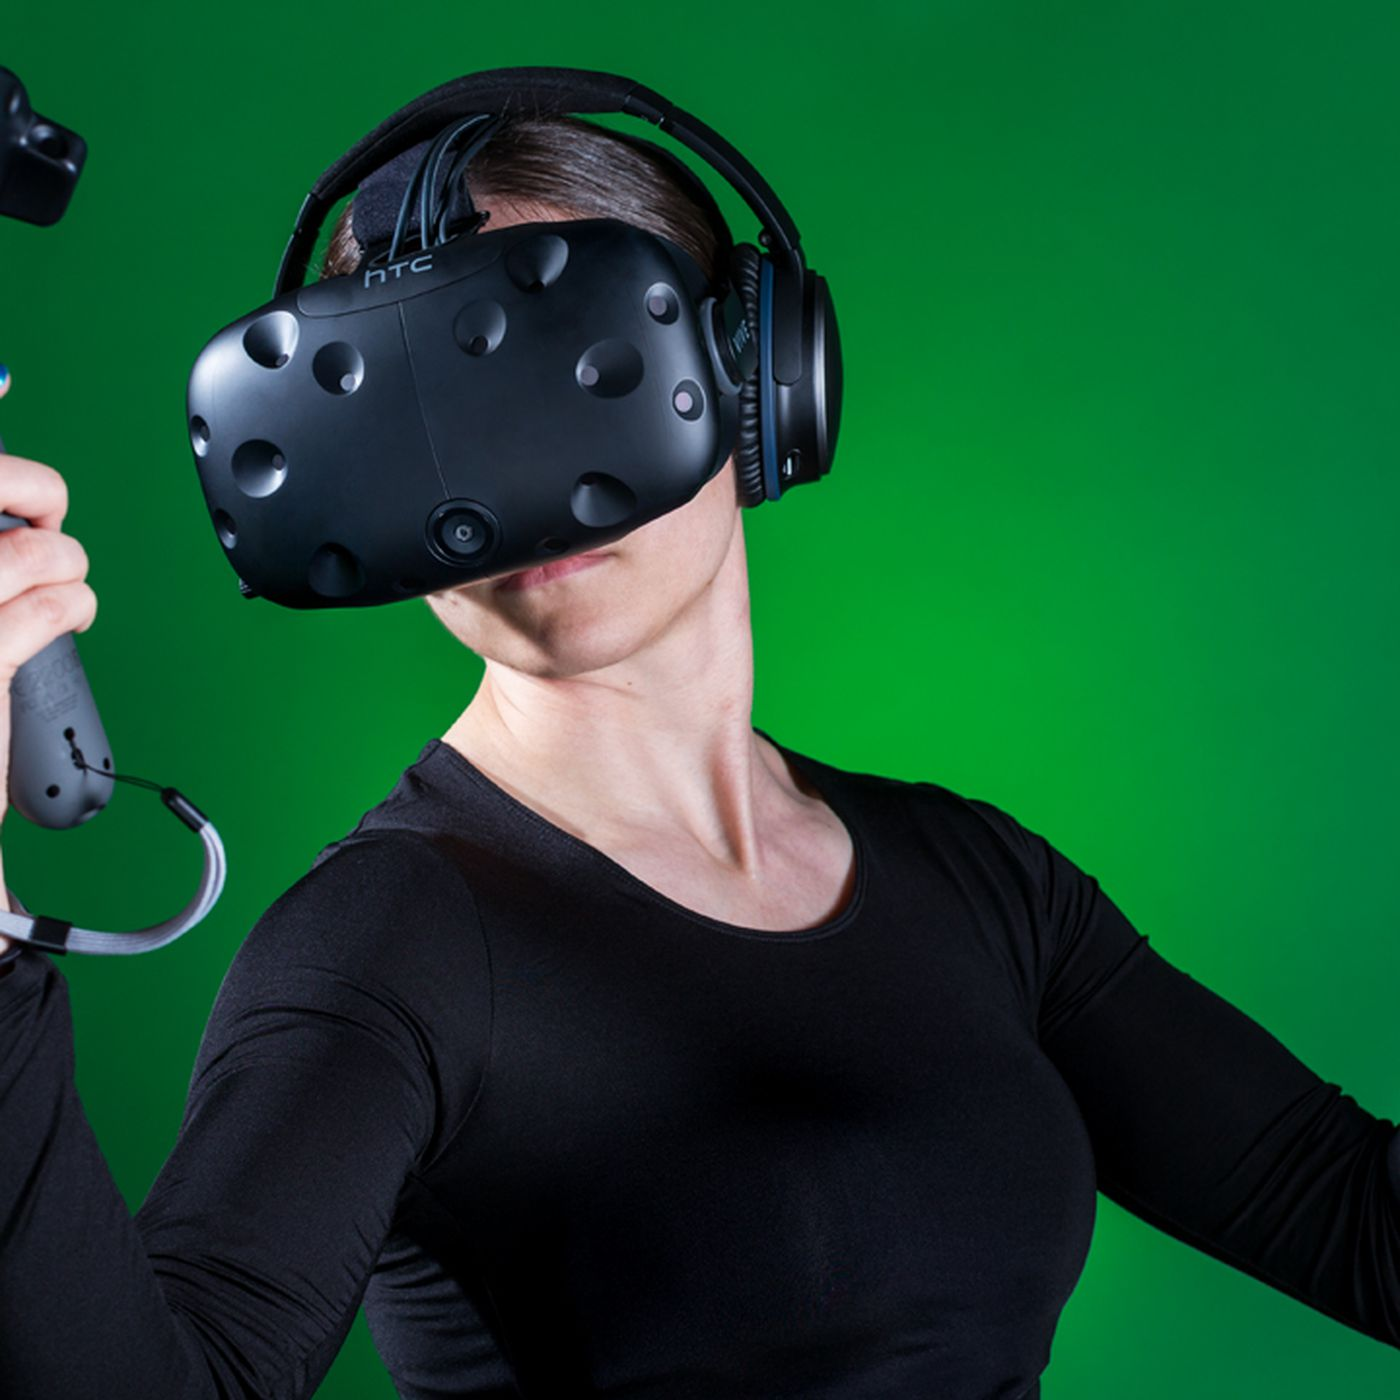 Should you buy an HTC Vive right now? - The Verge